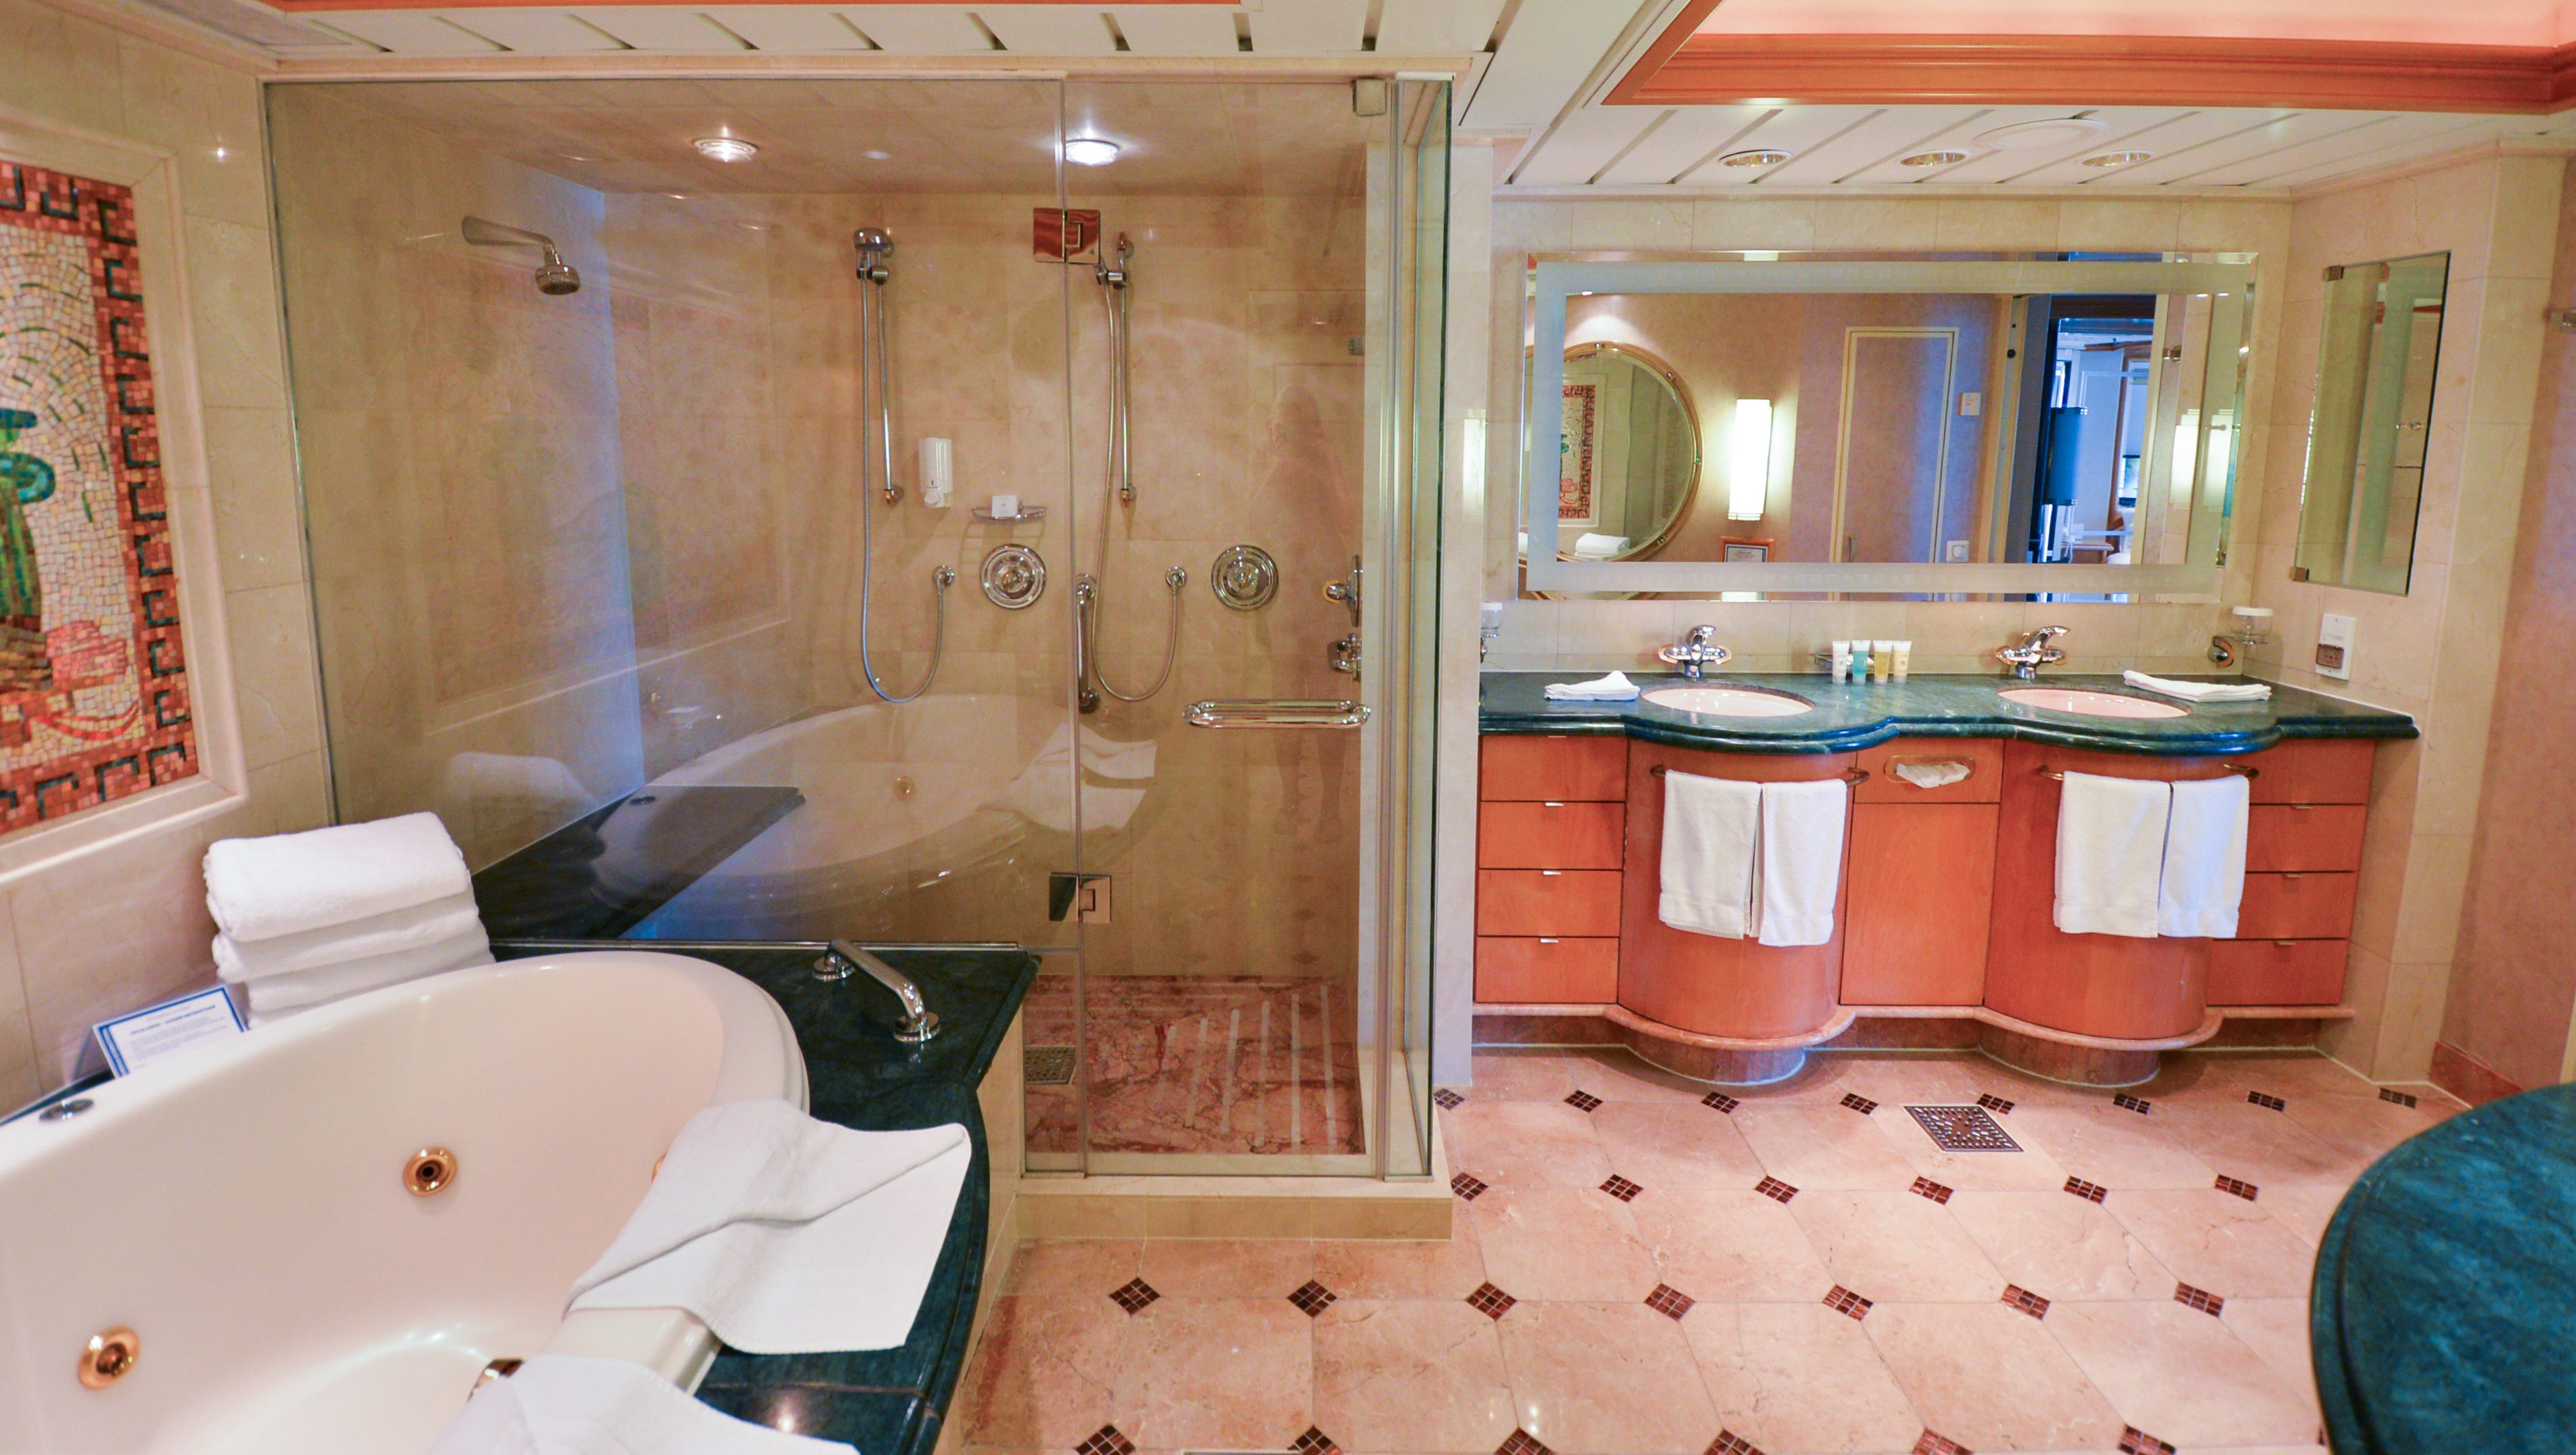 The Royal Suite's master bathroom has three sinks in all -- two in the main part of the bathroom and one more near the toilet and bidet.